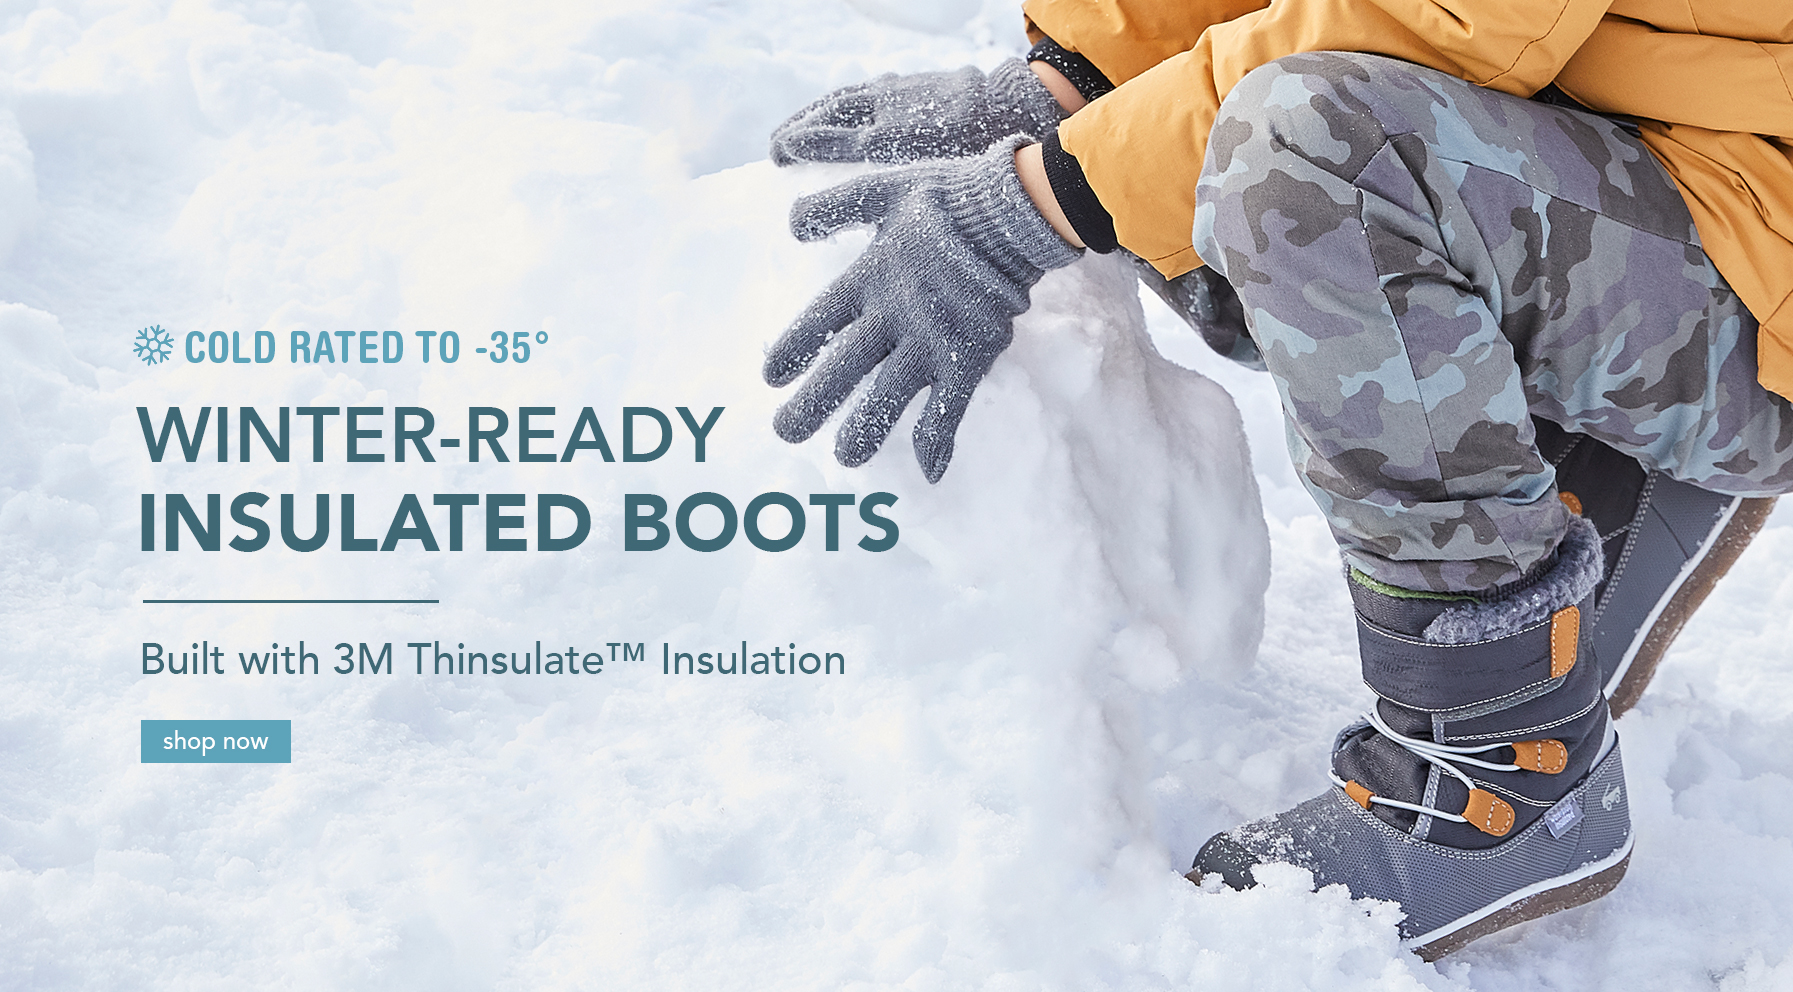 New Cold Weather boot styles are here!